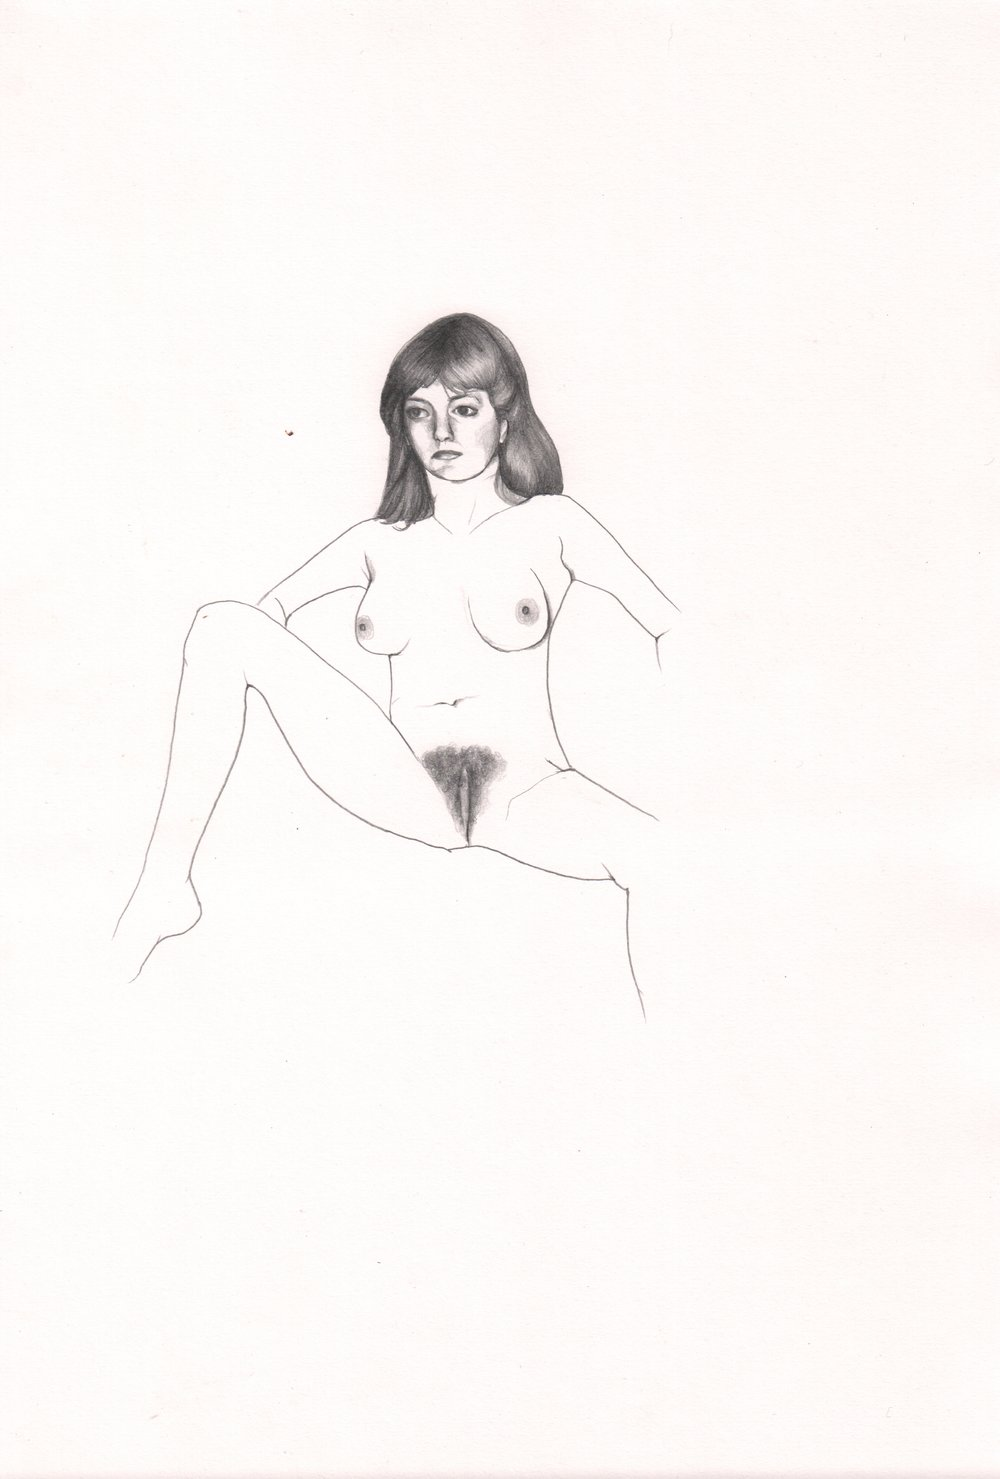 ERICA EYRES, Jane, 2015, pencil on paper. 11.5 x 18.5 inches